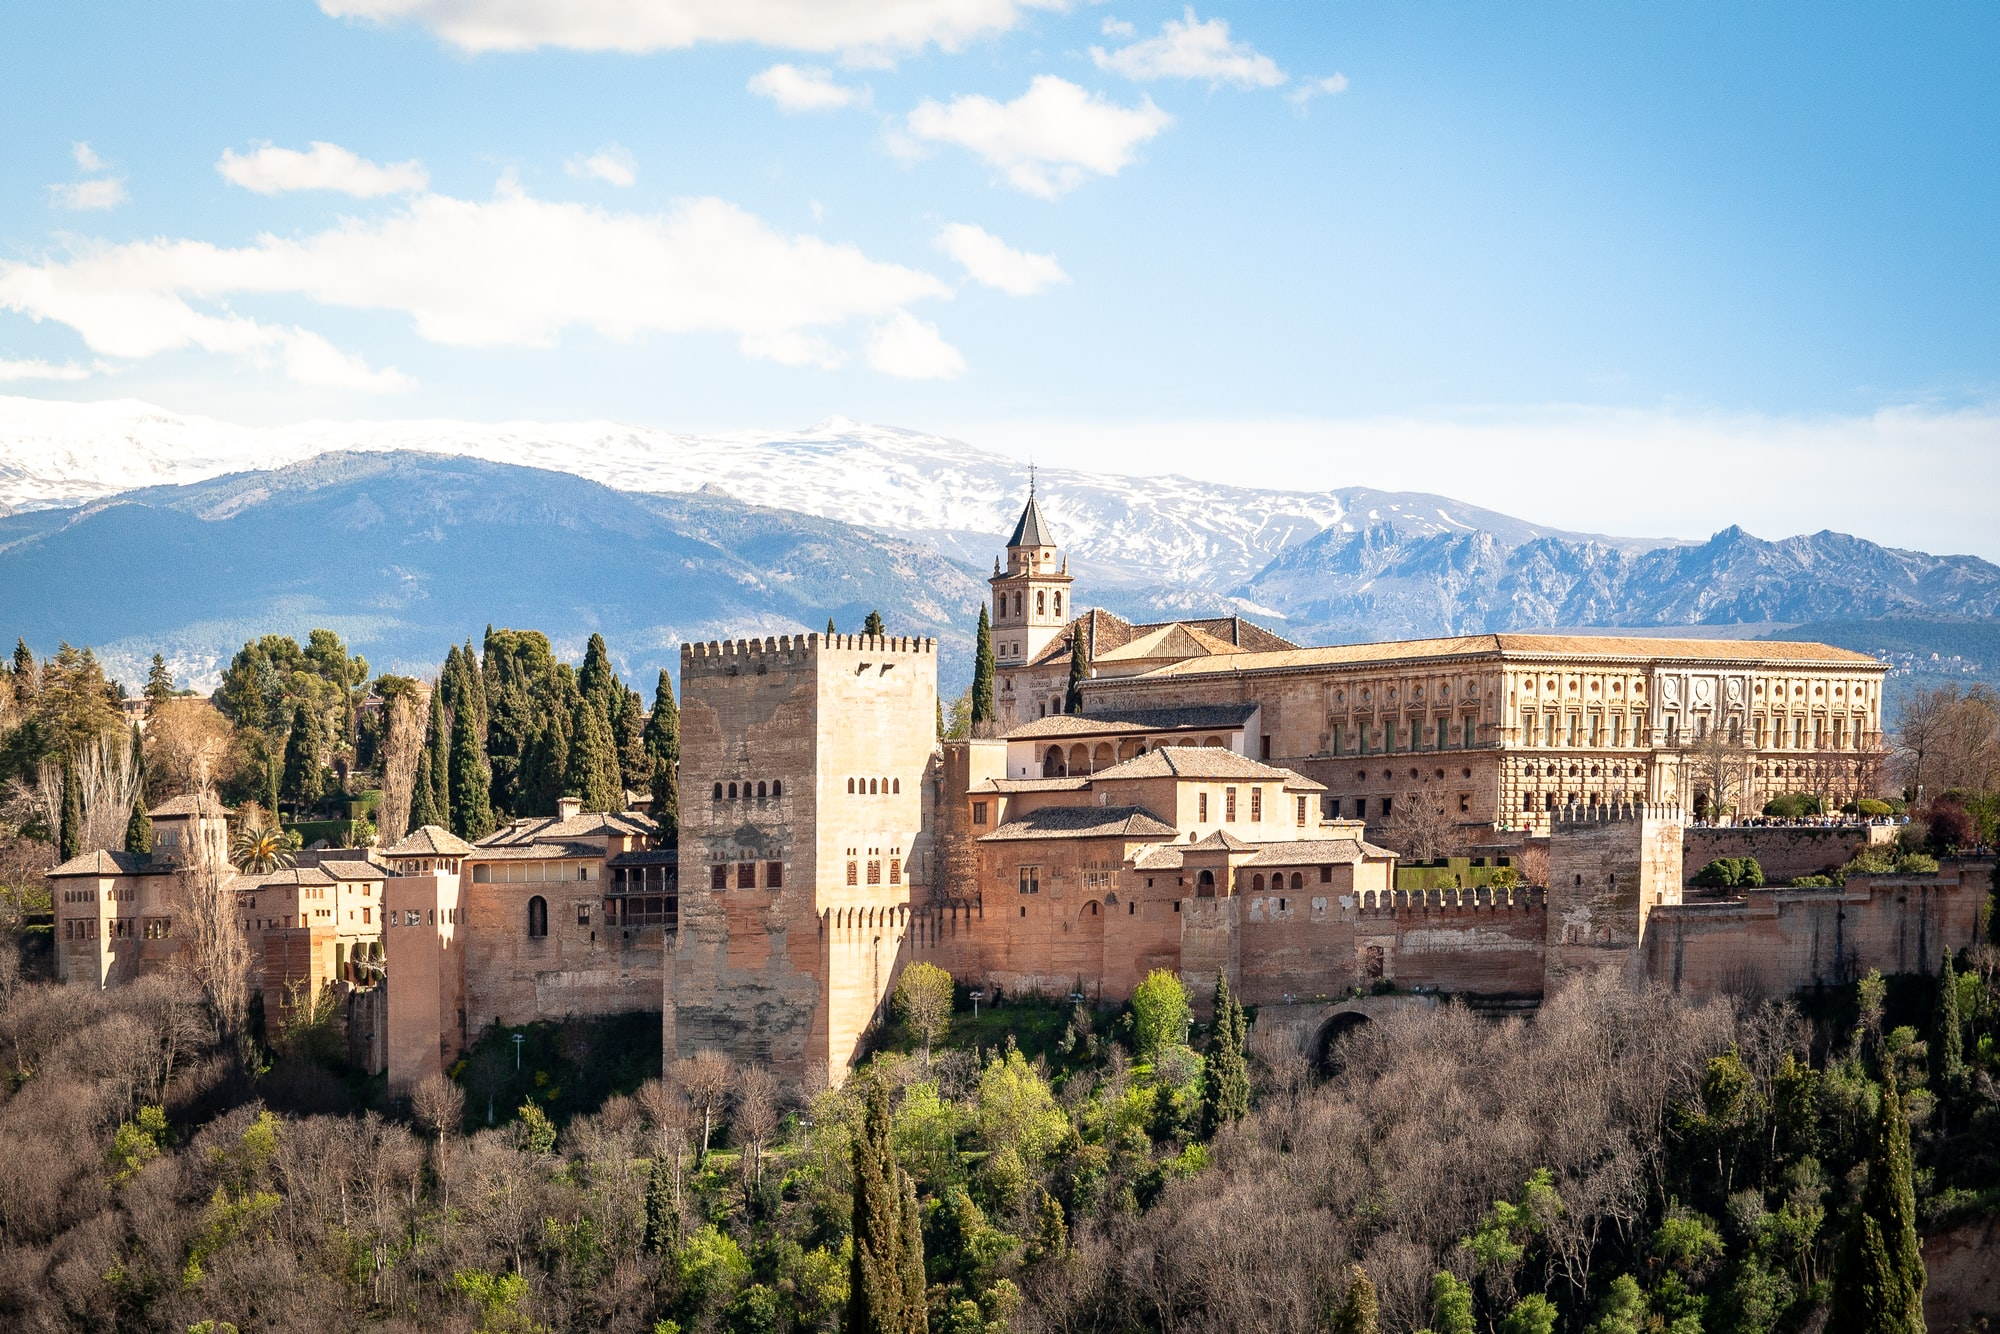 Alhambra palace in spring, Granada, Spain. In early April the mountains are still covered in snow.